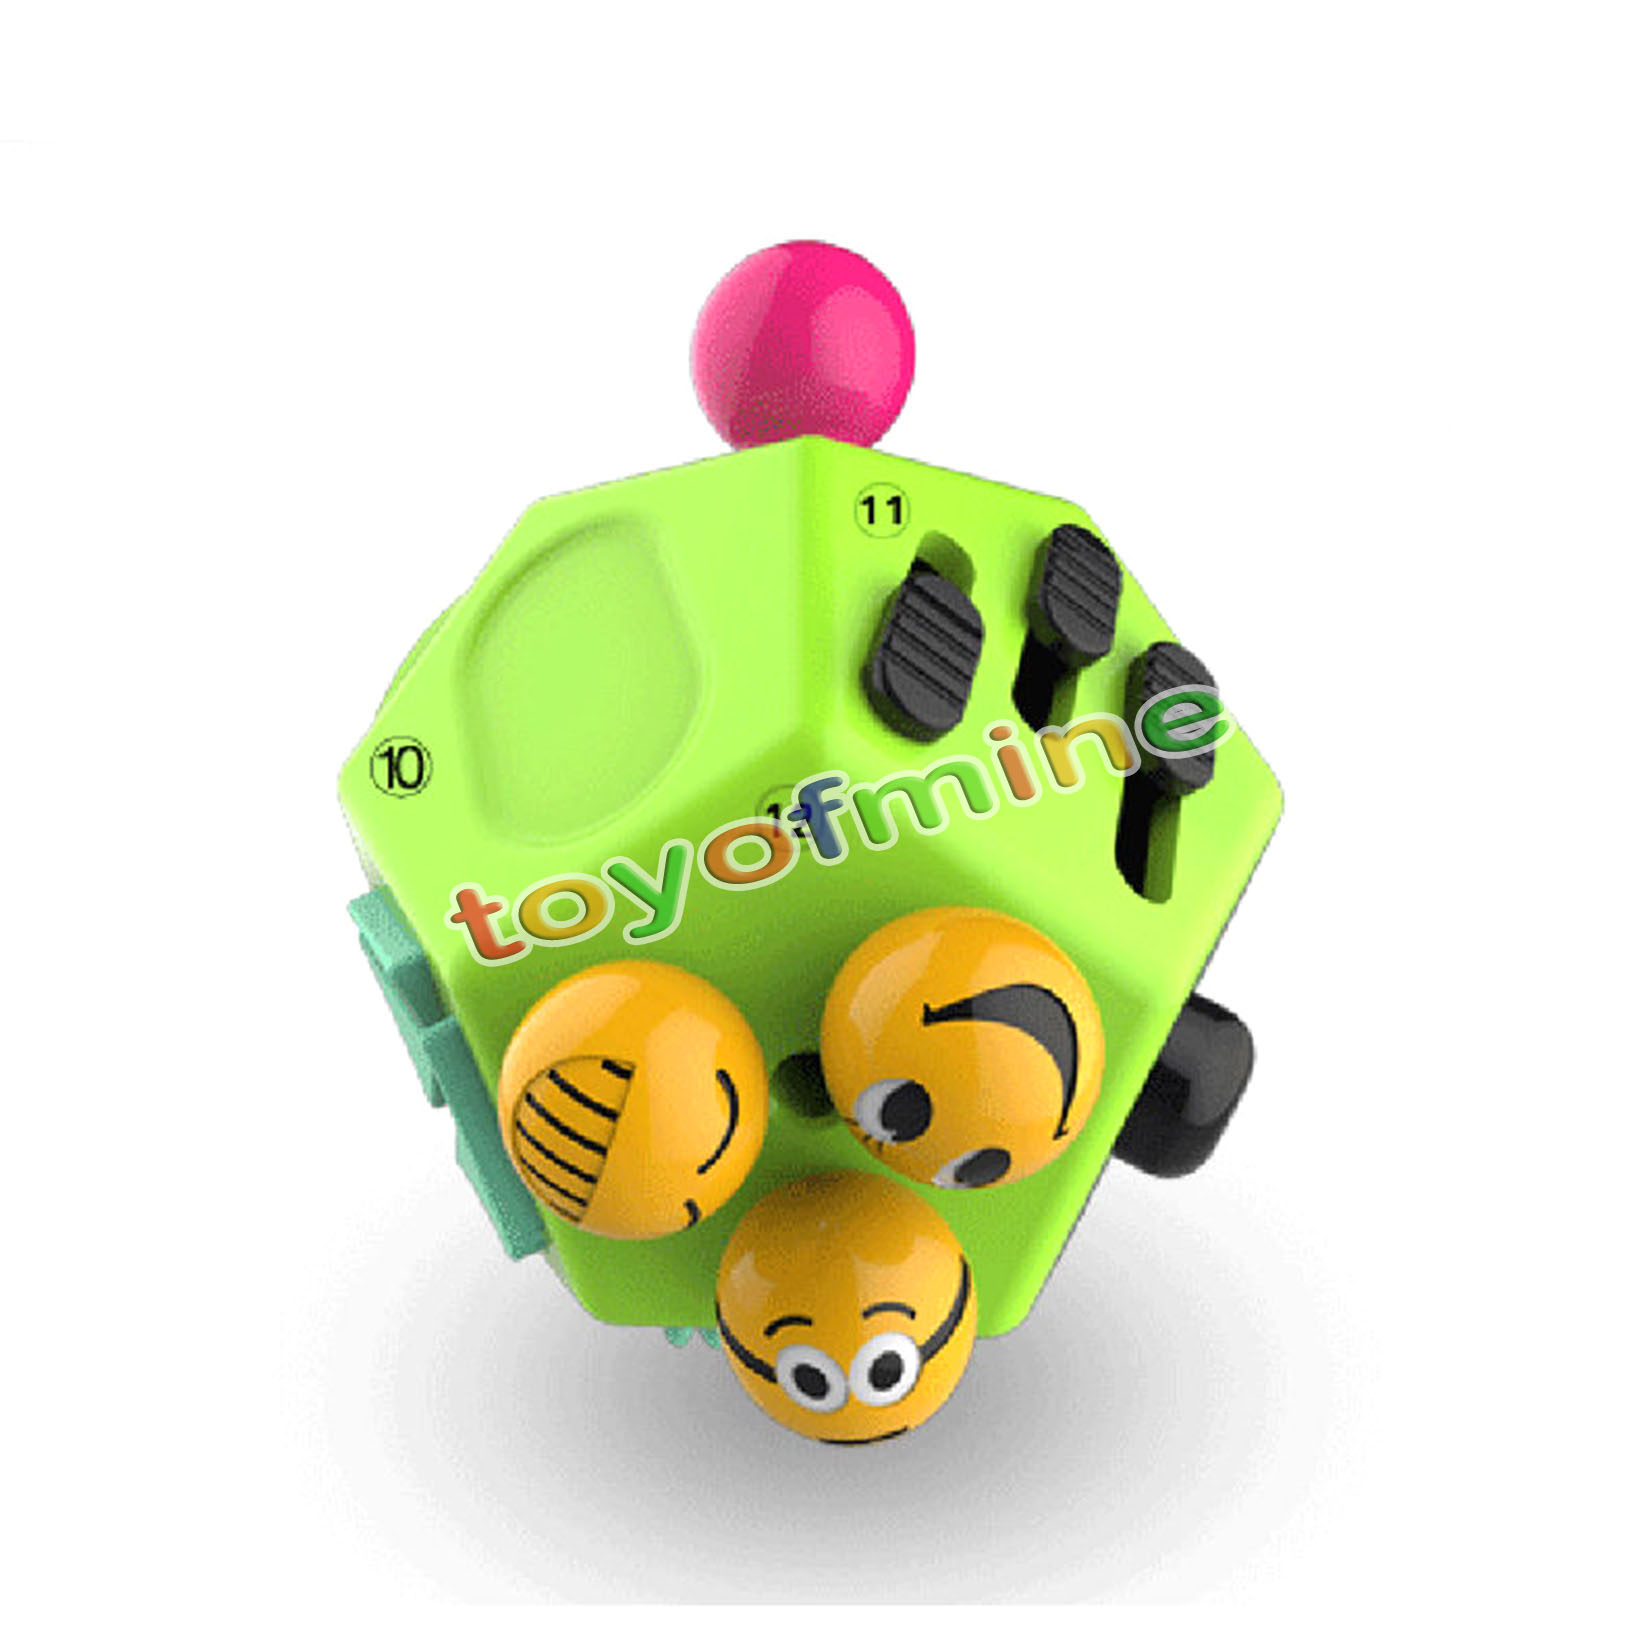 Toys For Autistic Adults : Fidget cube toy Ⅱ anxiety stress relief autism side